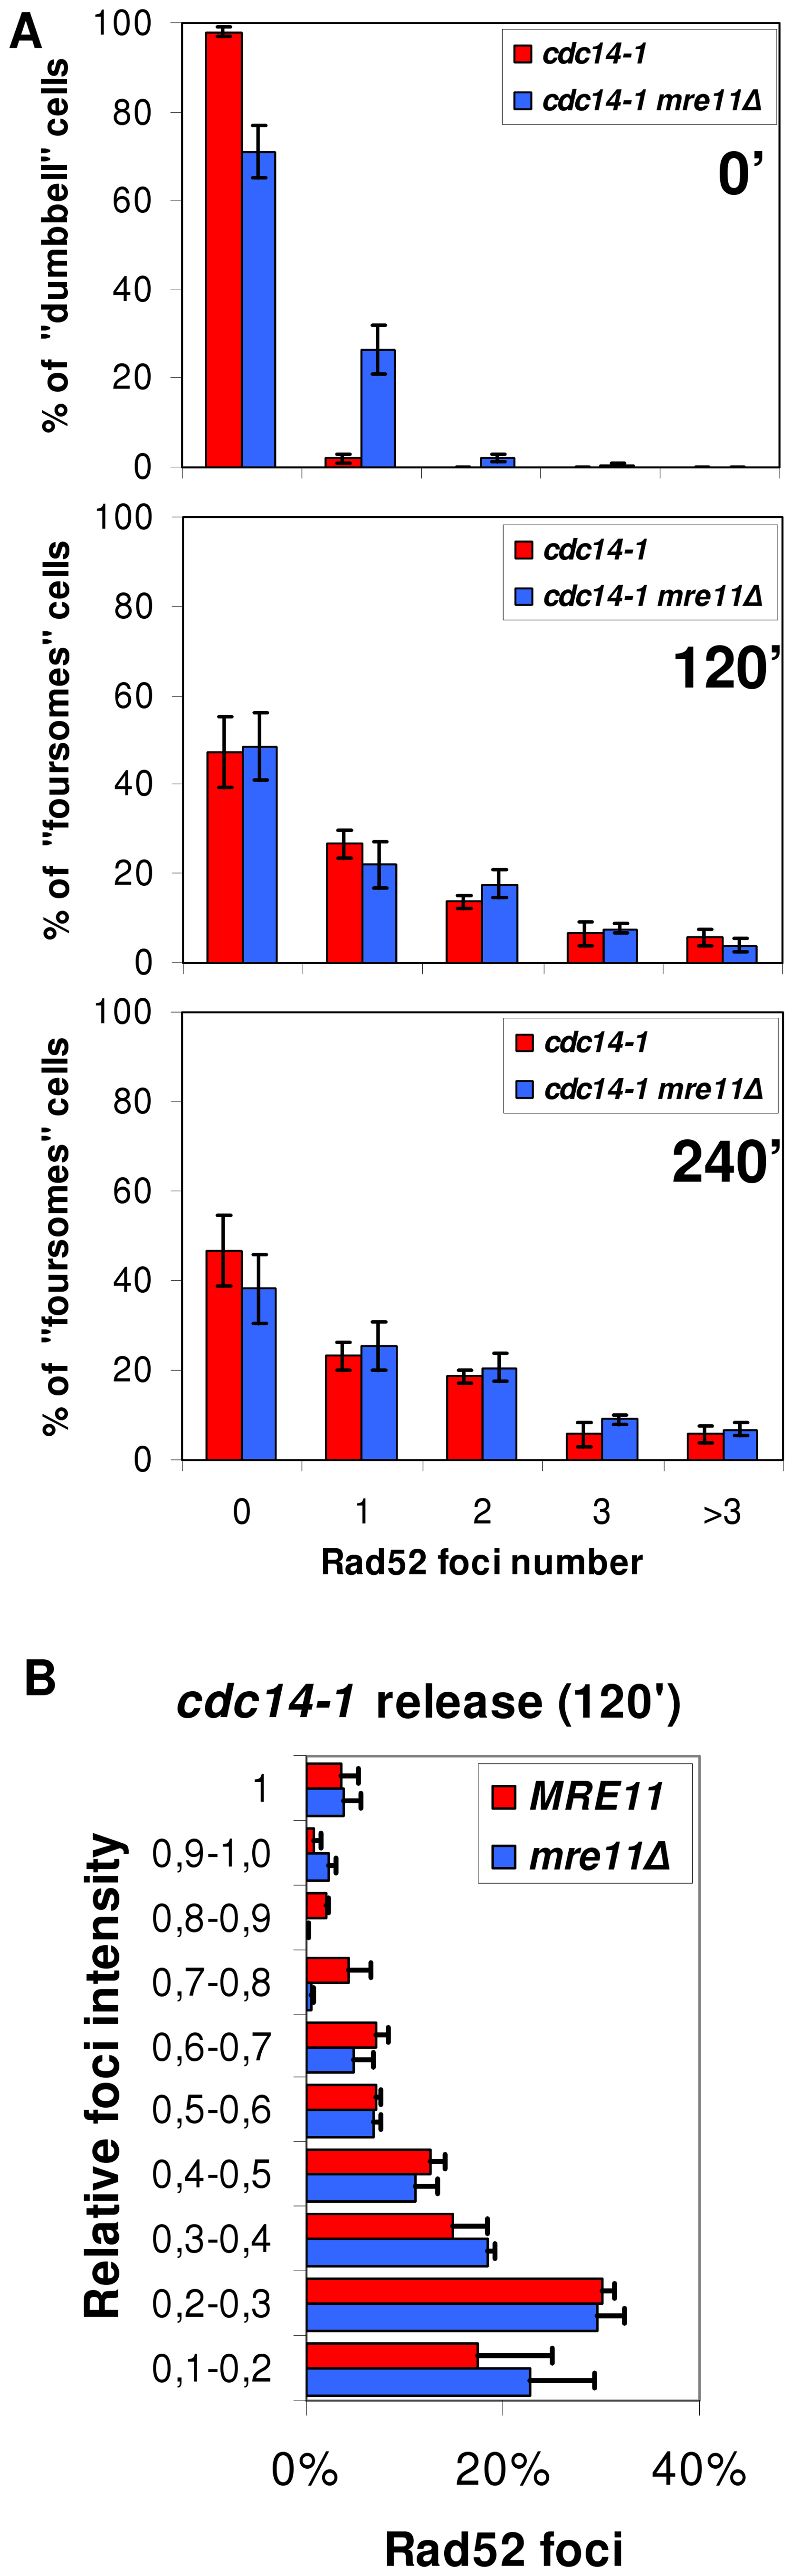 Accumulation of Rad52 foci after the <i>cdc14-1</i> release is independent on Mre11.